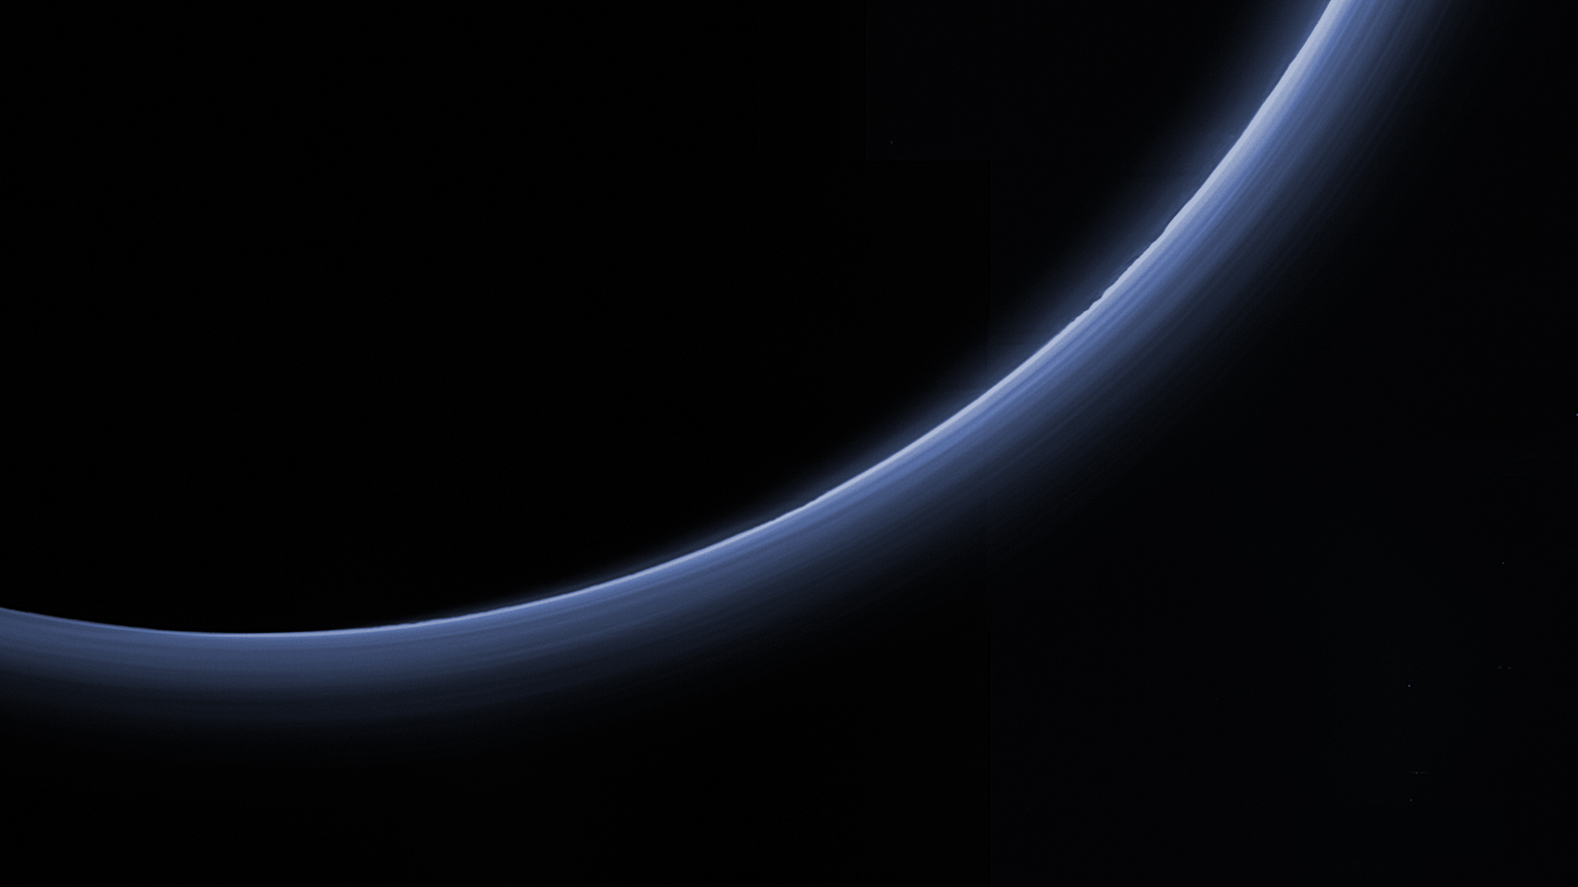 Pluto's hazy atmosphere, made visible by scattered sunlight seen by New Horizons. - Image Credit: NASA/Johns Hopkins University Applied Physics Laboratory/Southwest Research Institute